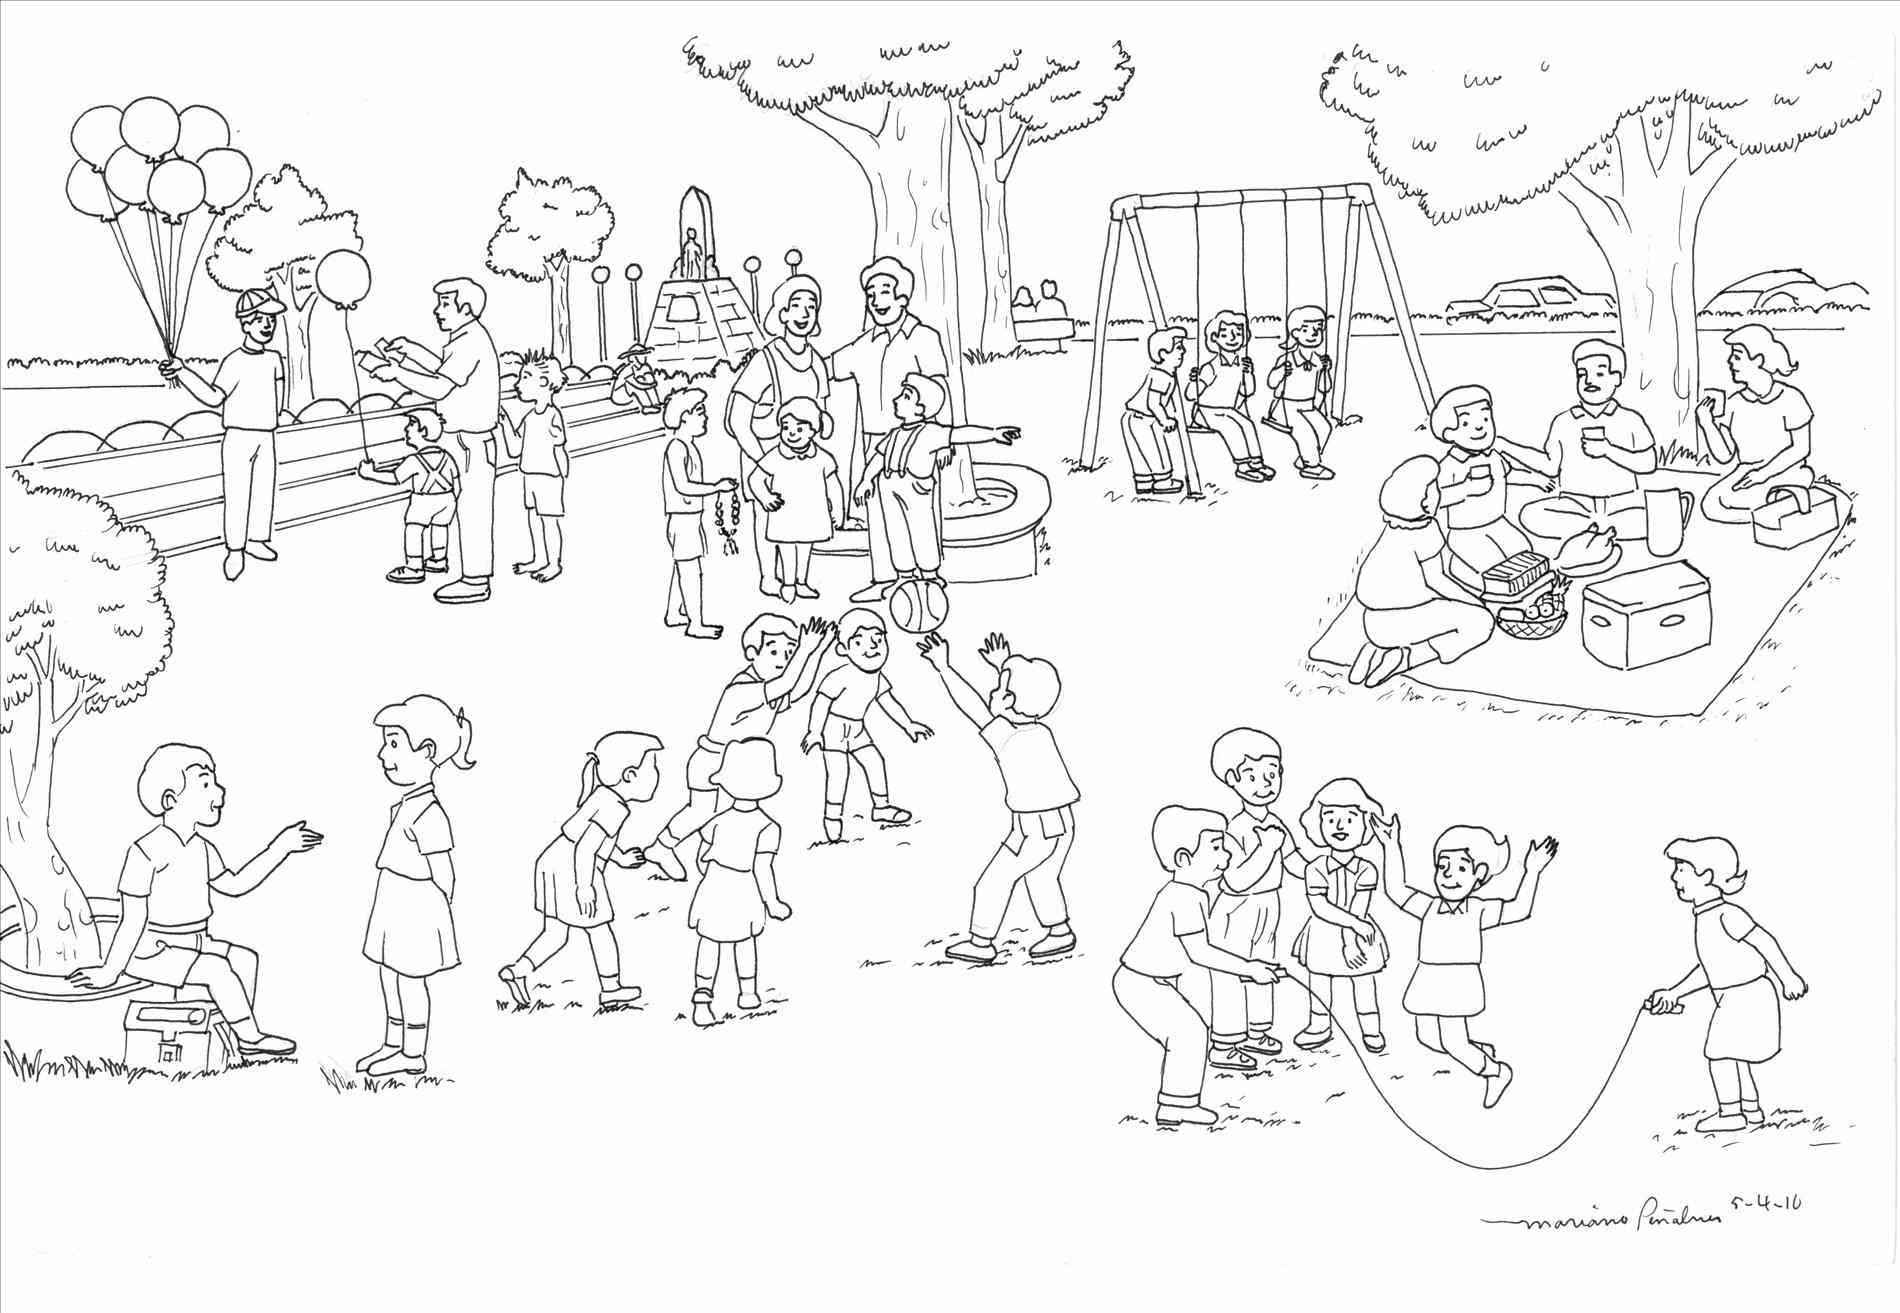 playground coloring pages playground coloring pages coloring pages to download and pages playground coloring